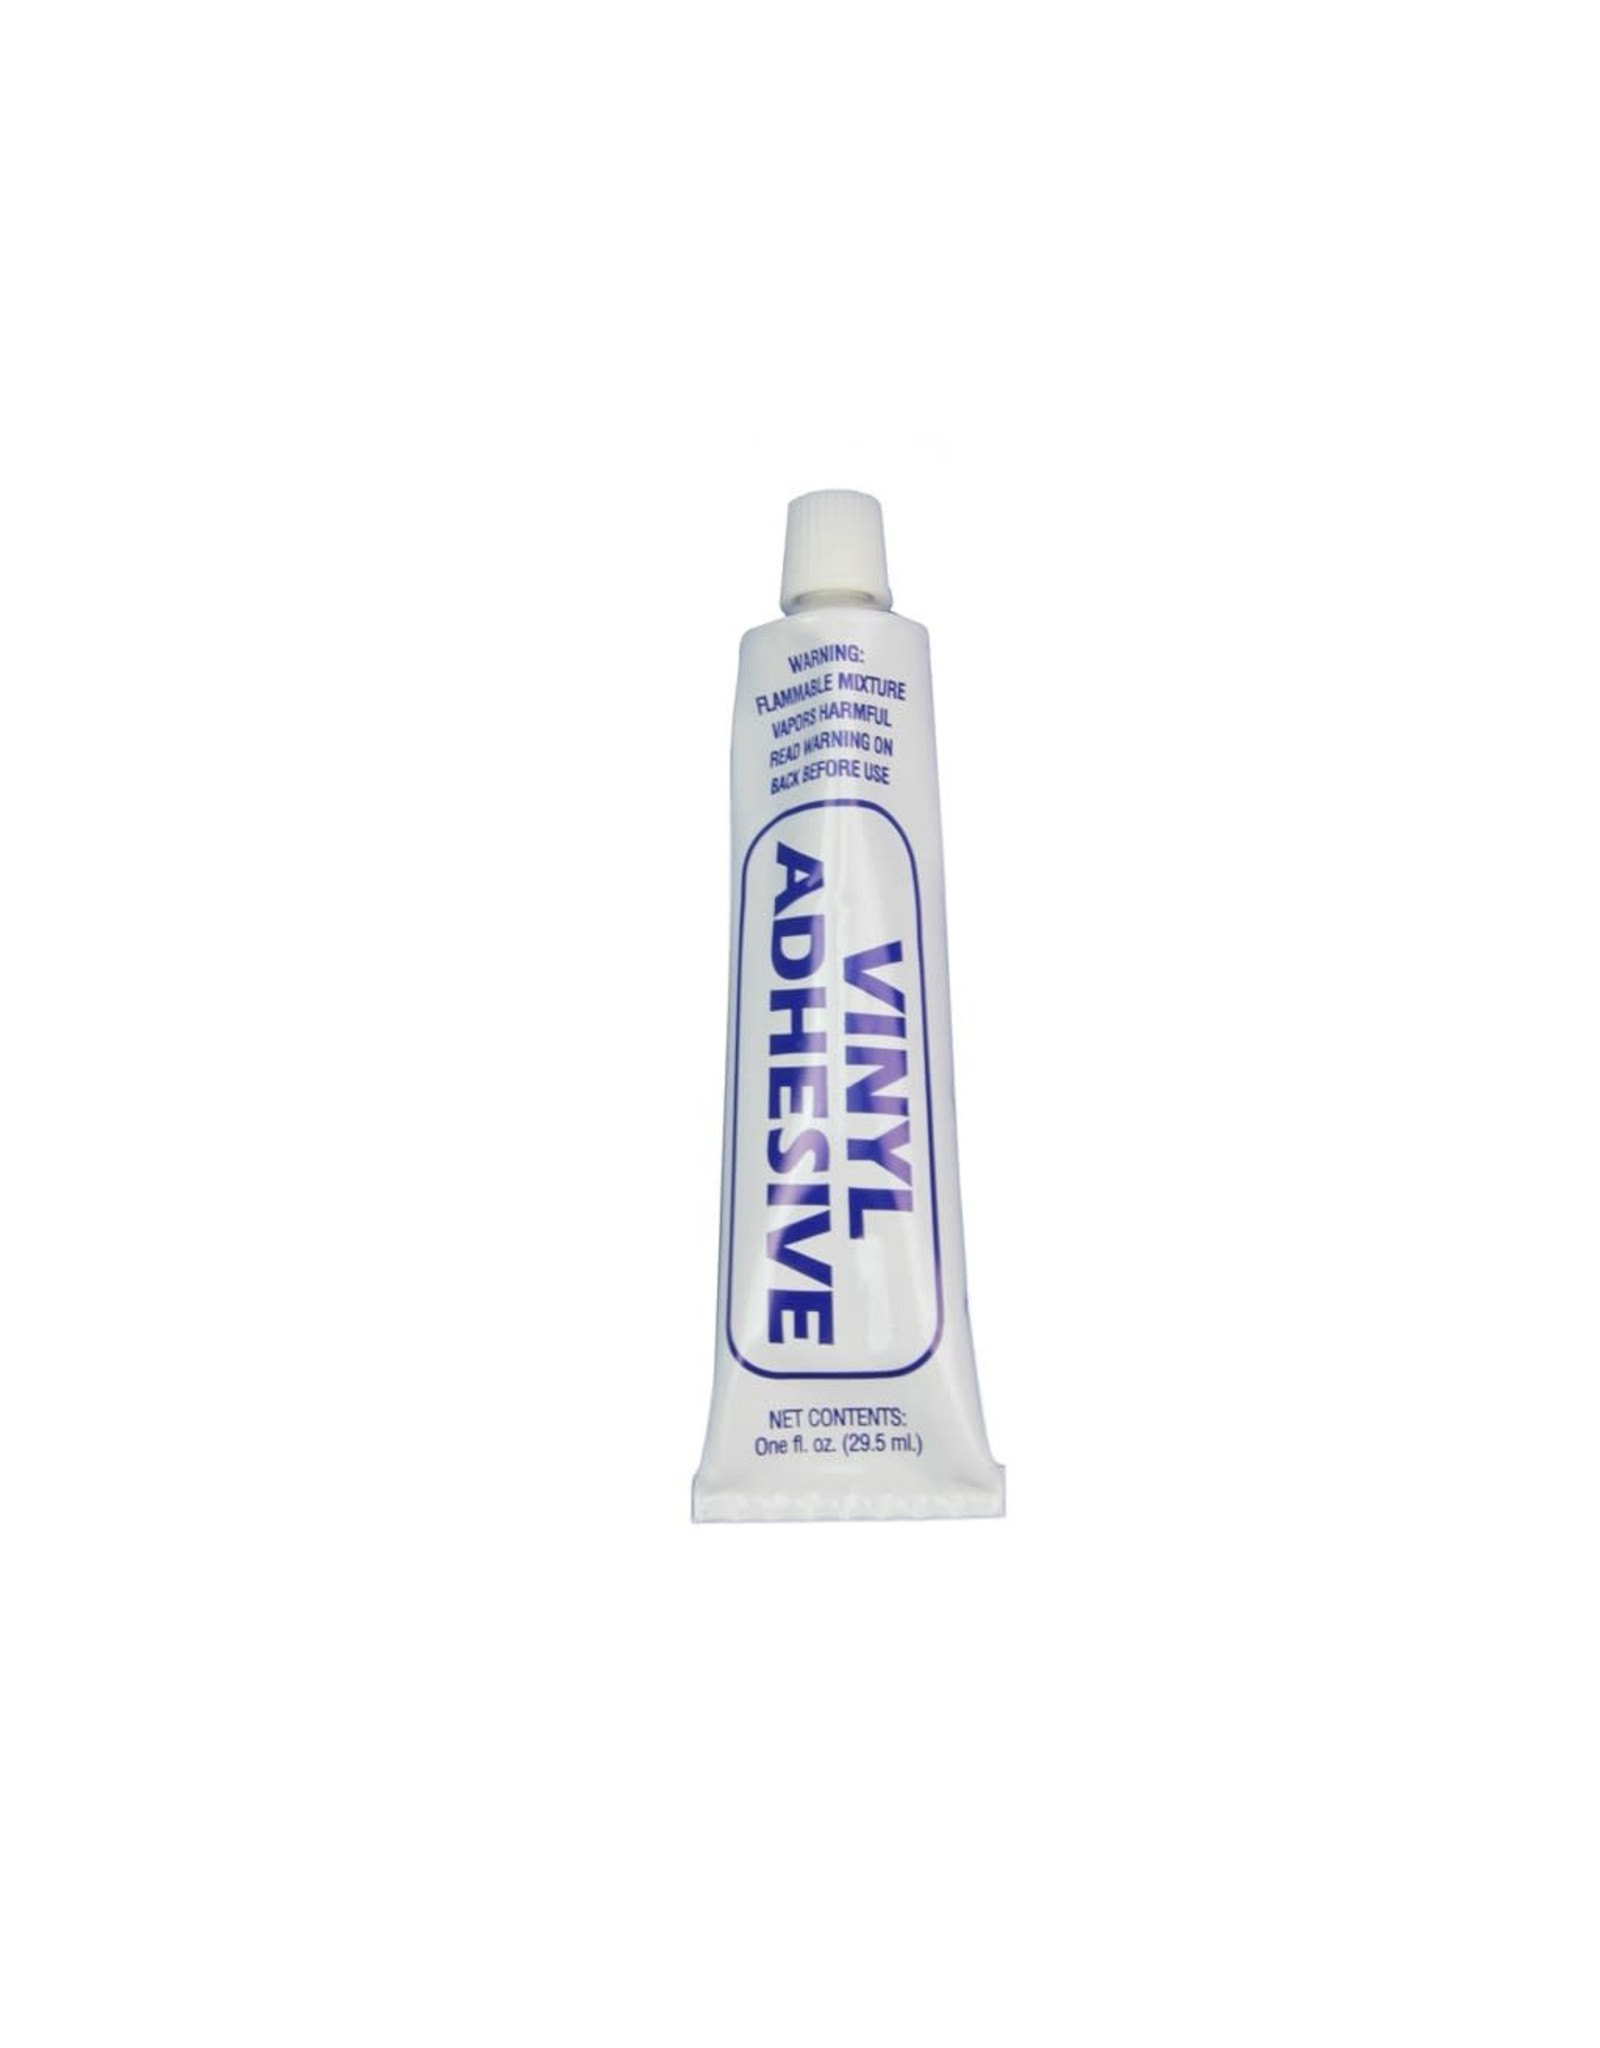 Atlan 1oz Tube of Vynabond Glue